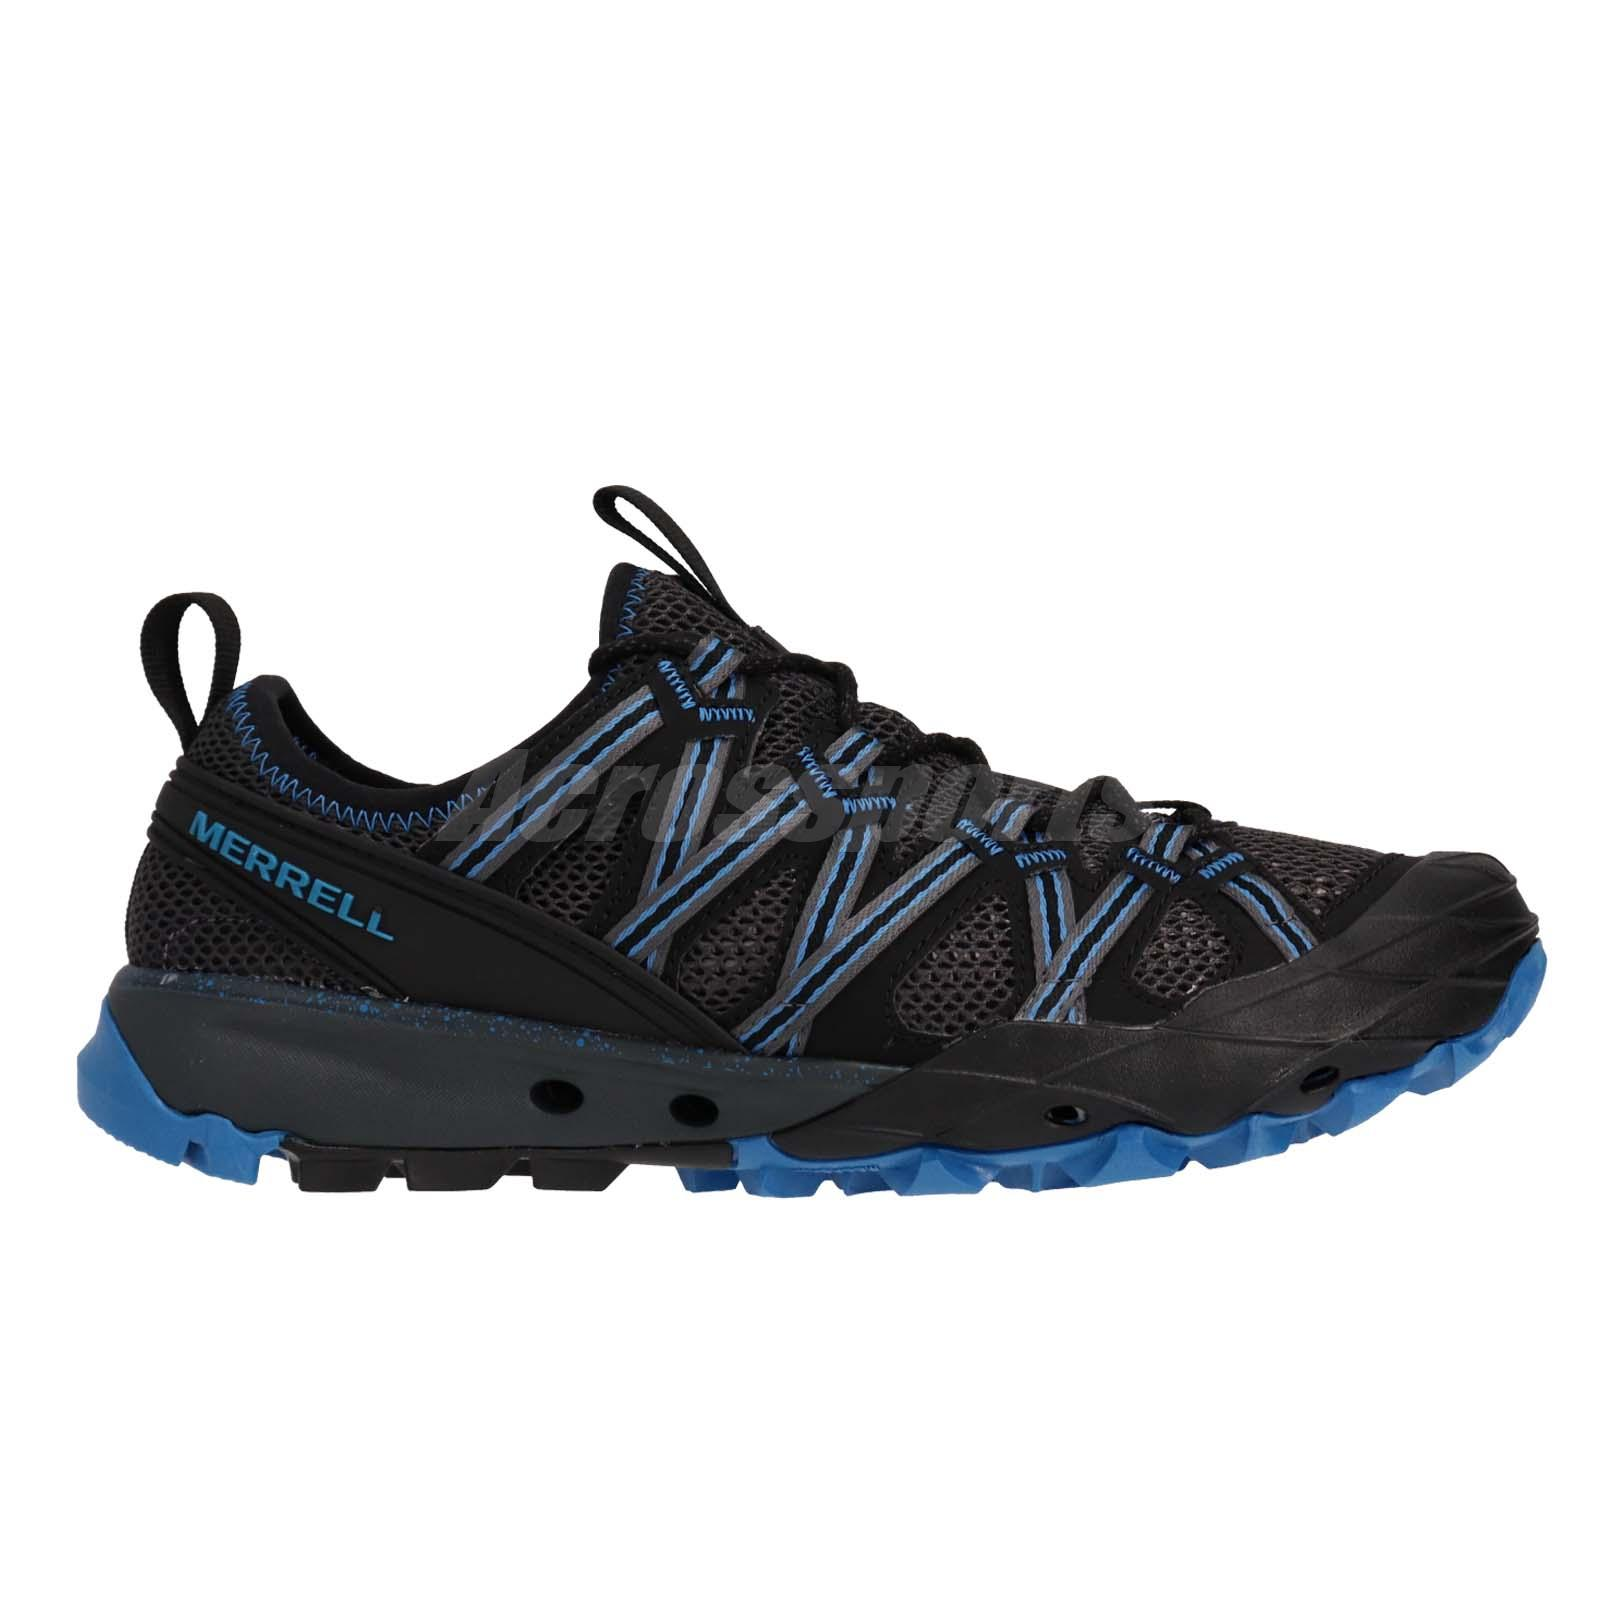 Merrell Choprock Vibram Black Blue Men Outdoors Hiking